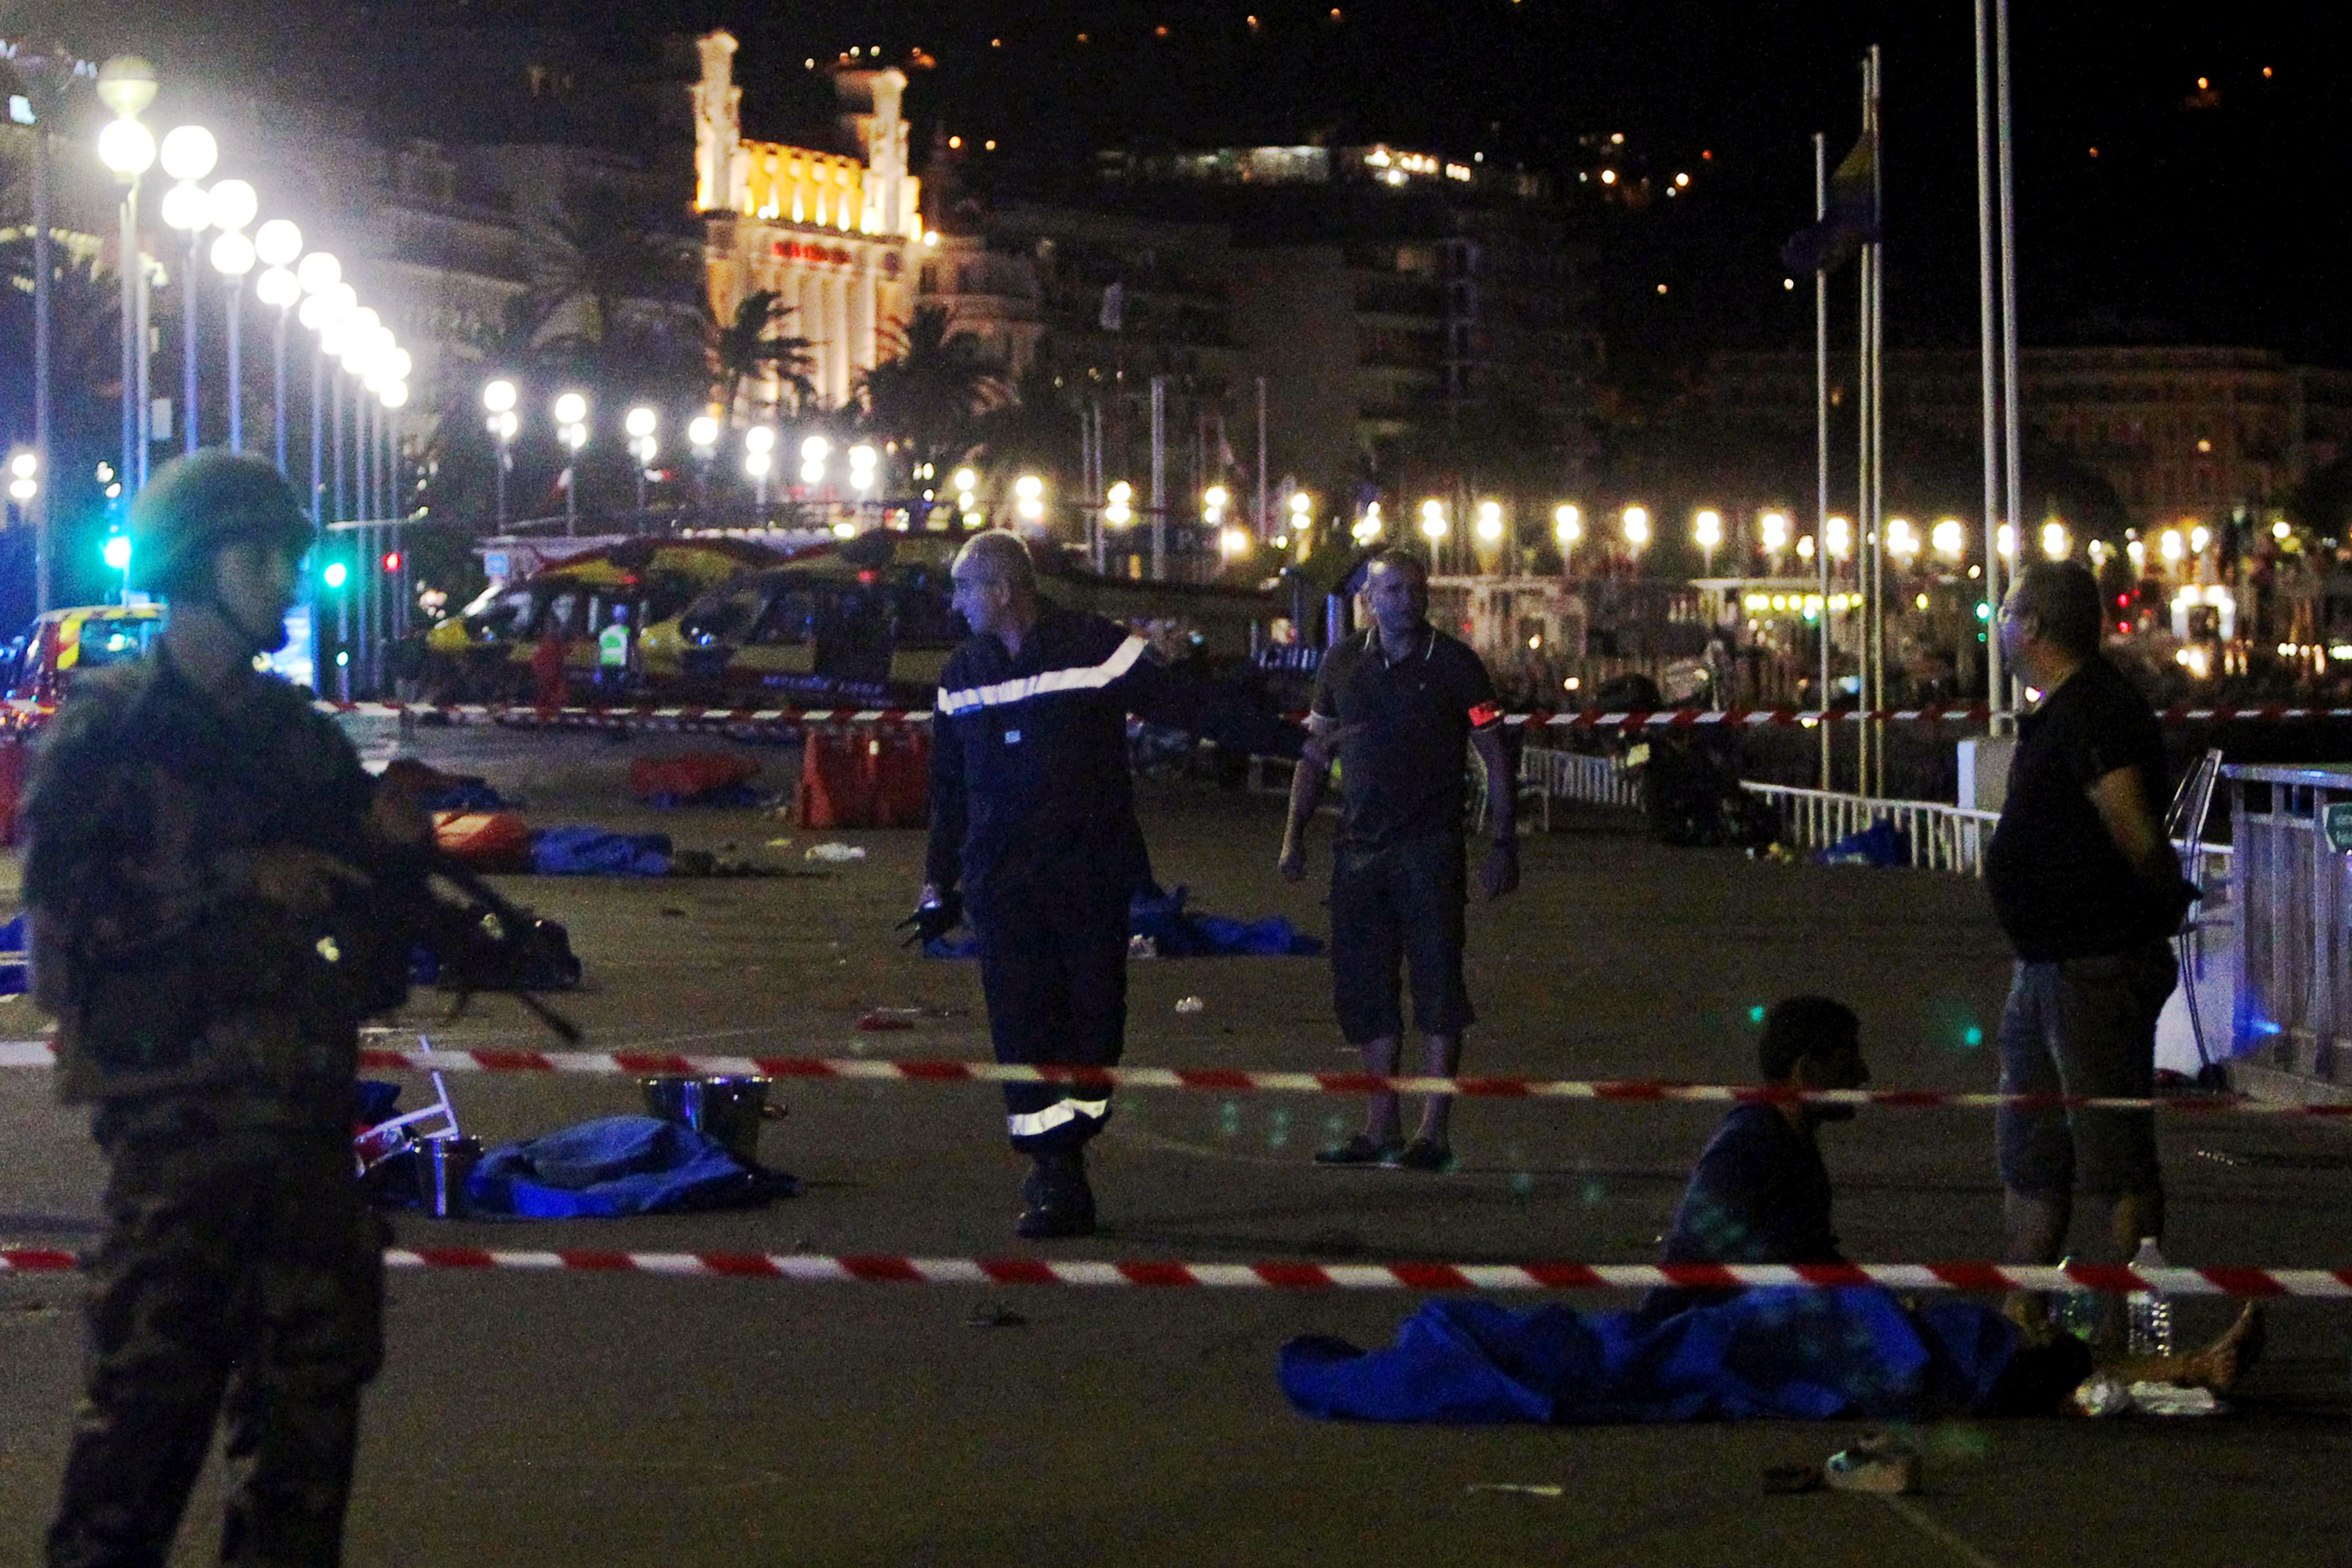 Soldiers, police officers and firefighters walk near bodies on the Promenade des Anglais seafront in the French Riviera town of Nice on July 15, 2016, after a van drove into a crowd watching a fireworks display.